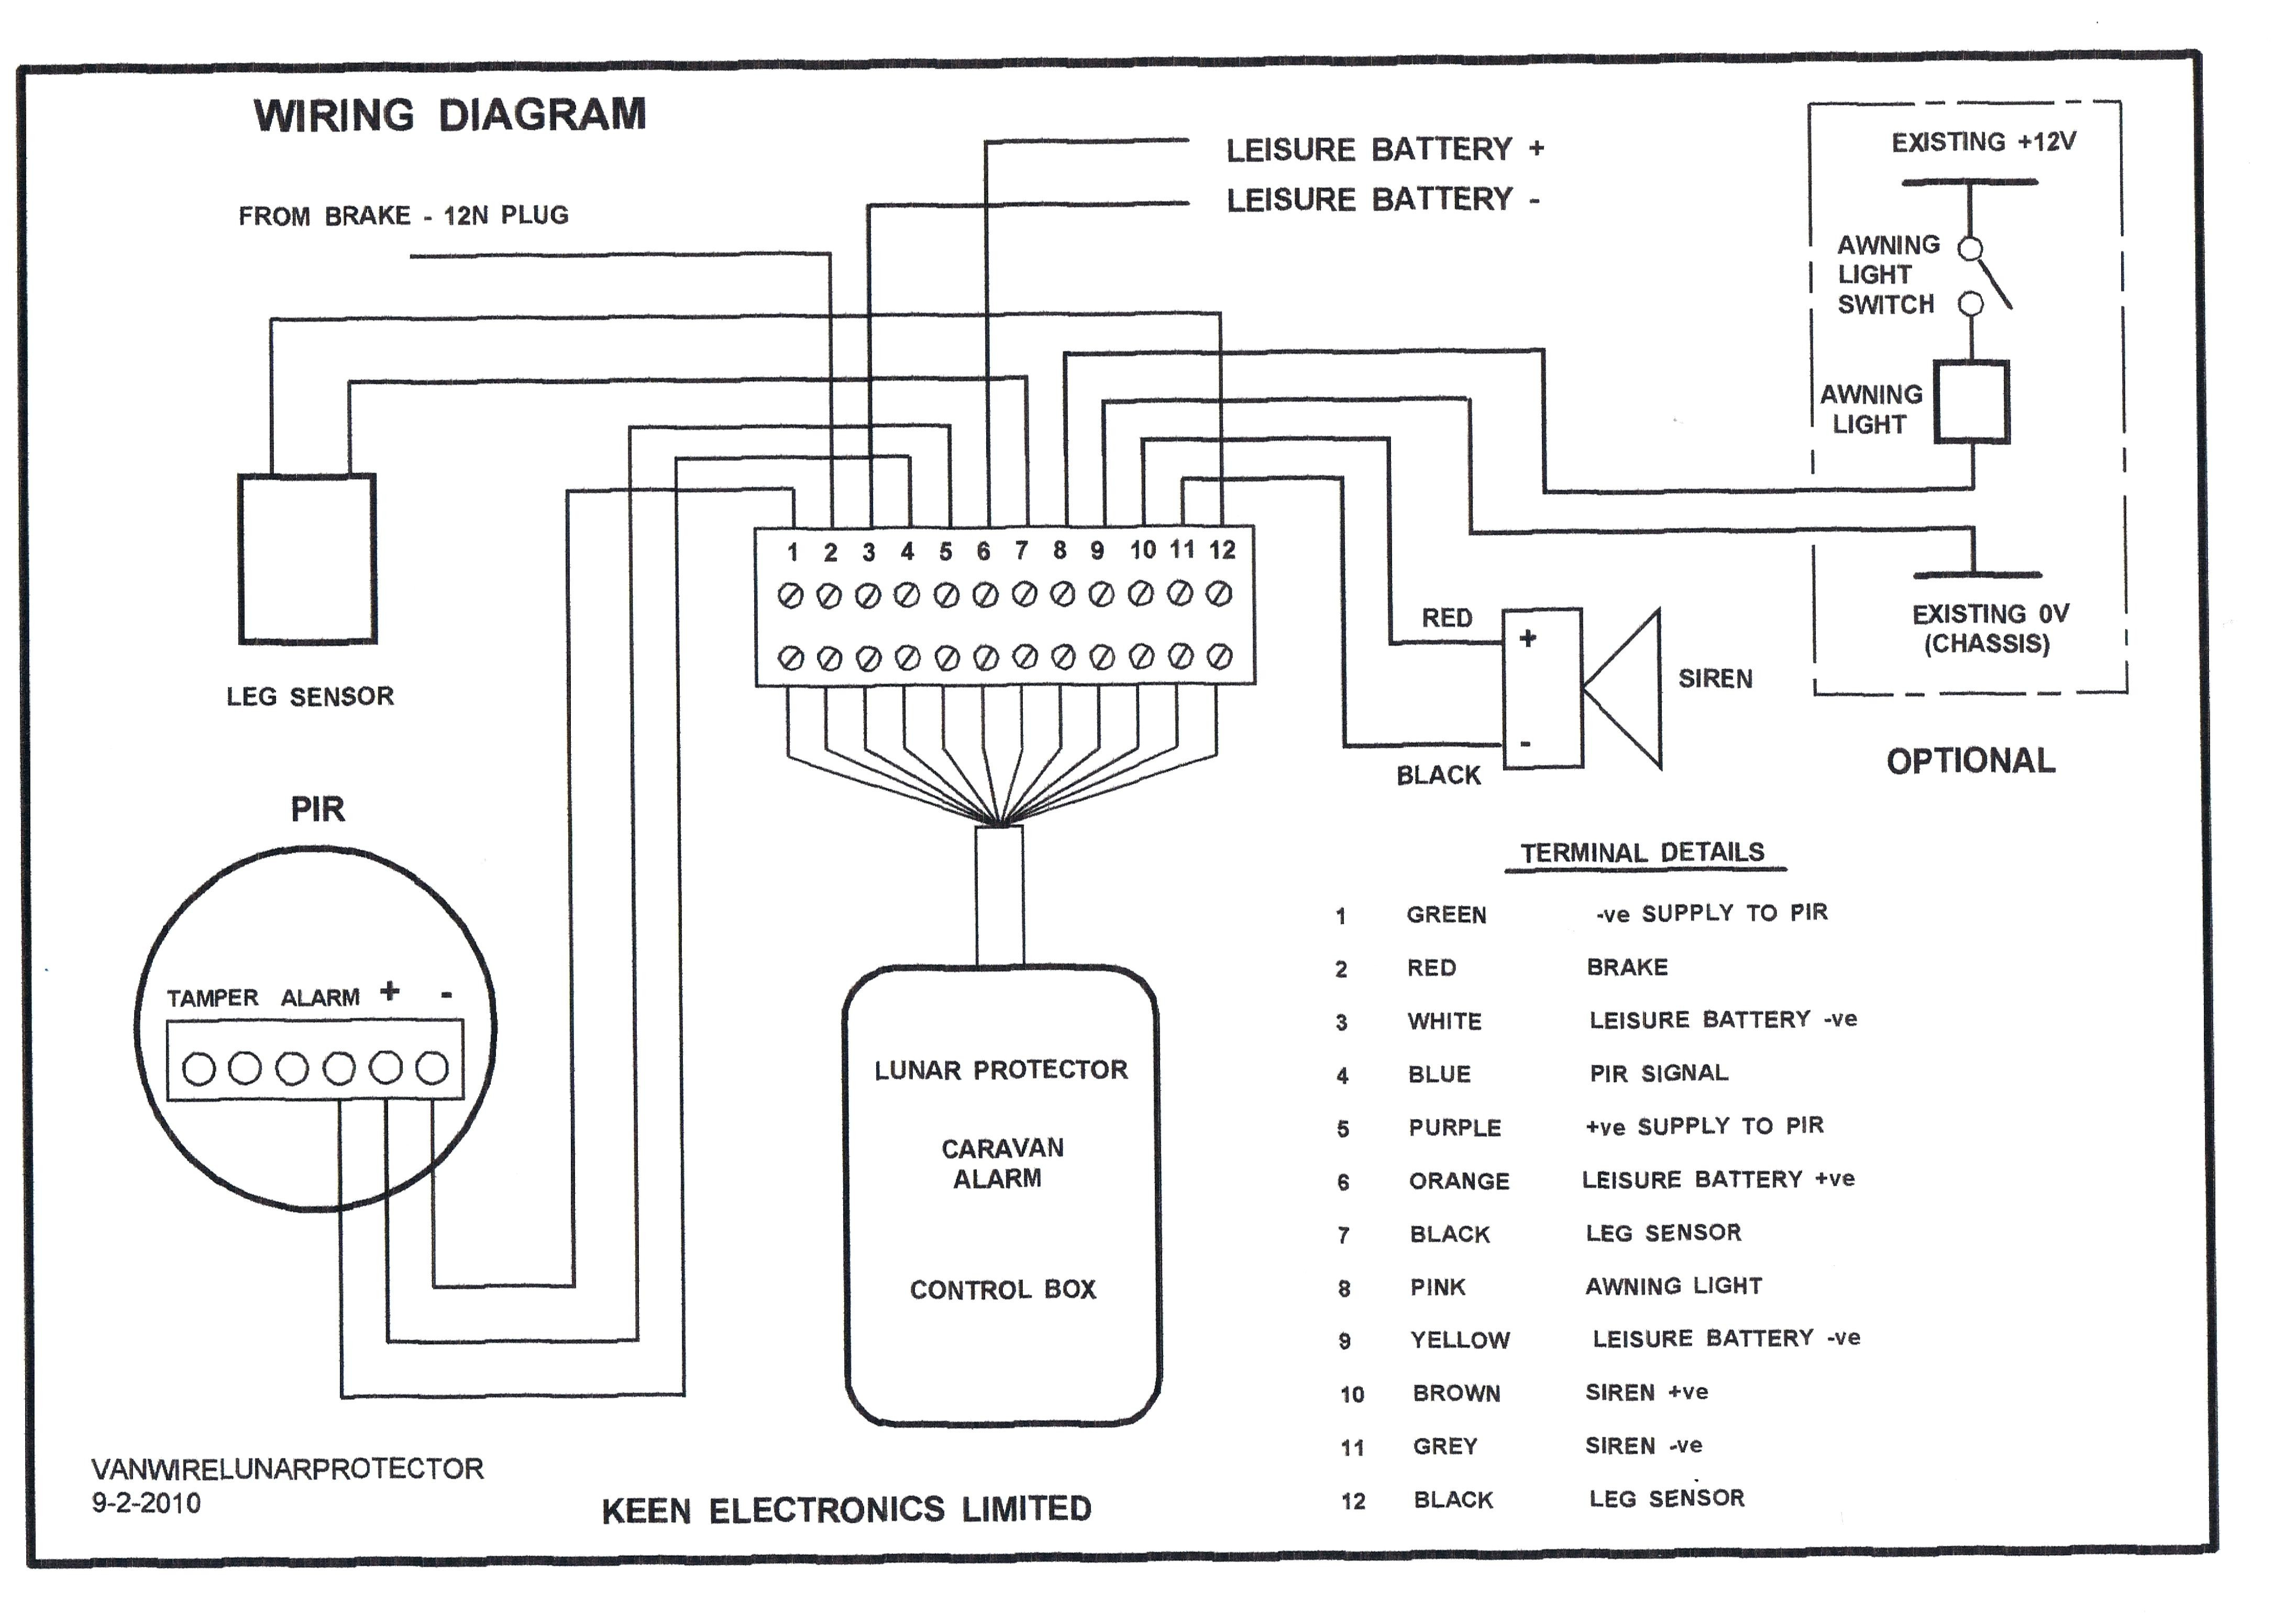 Home Security System Wiring Diagram Collection Sample Diy Diagrams Intruder Alarm Inspirationa Download